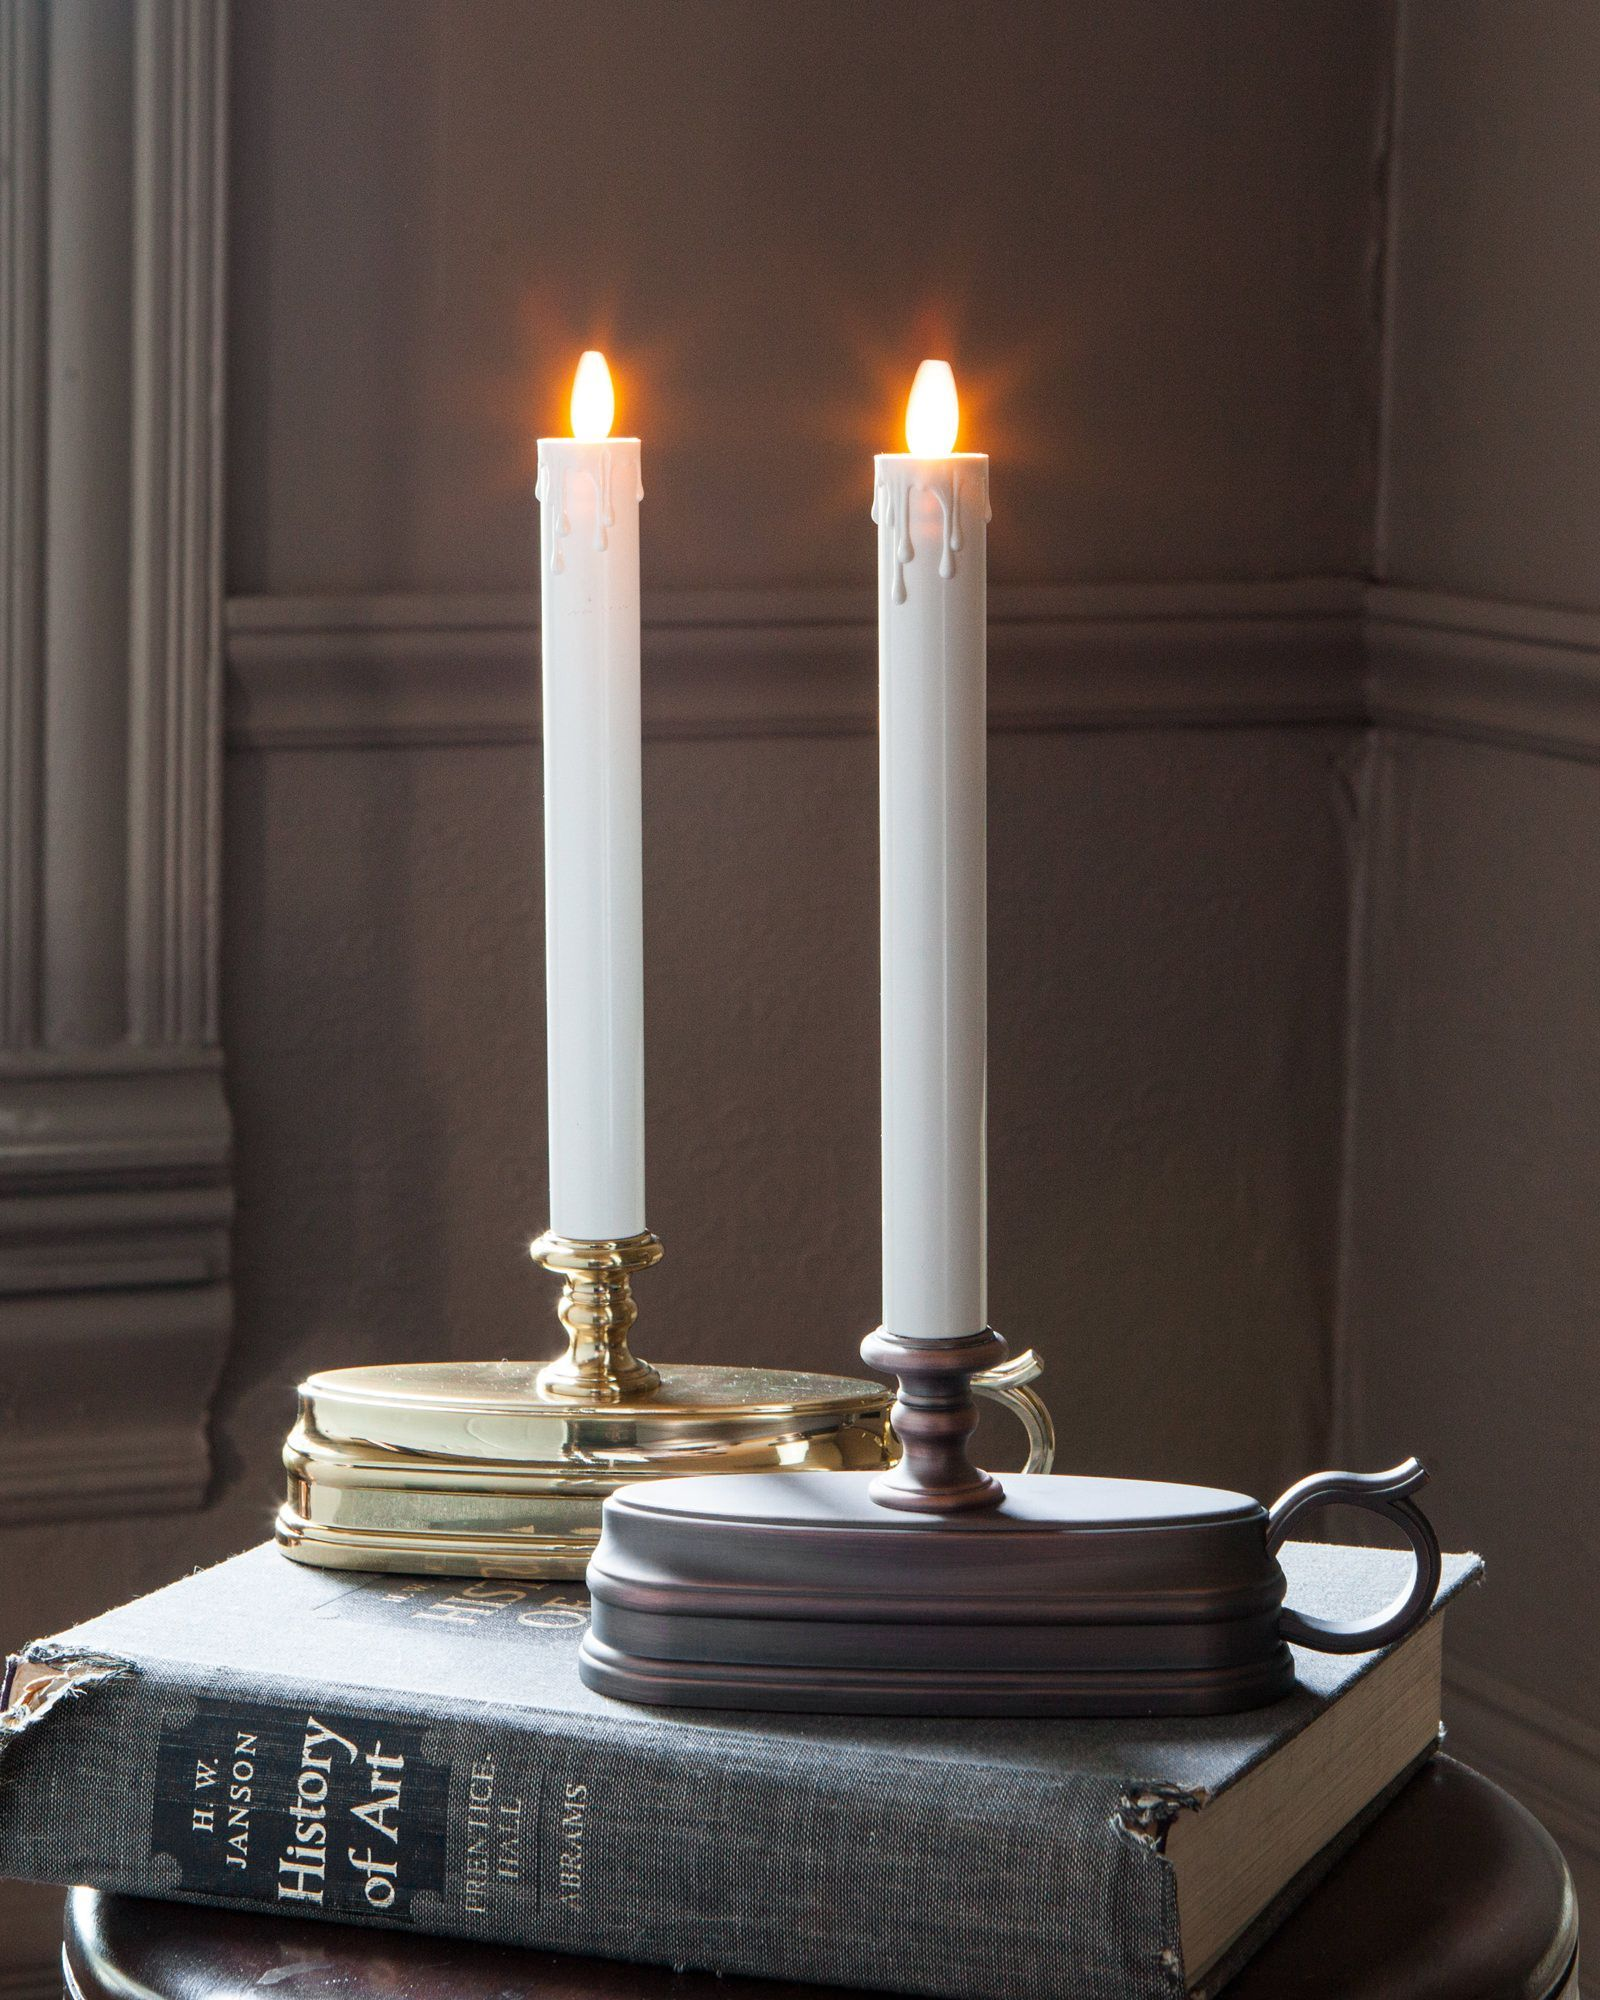 Christmas candles for windows battery operated - Battery Operated Window Candles Set Of 2 Balsam Hill